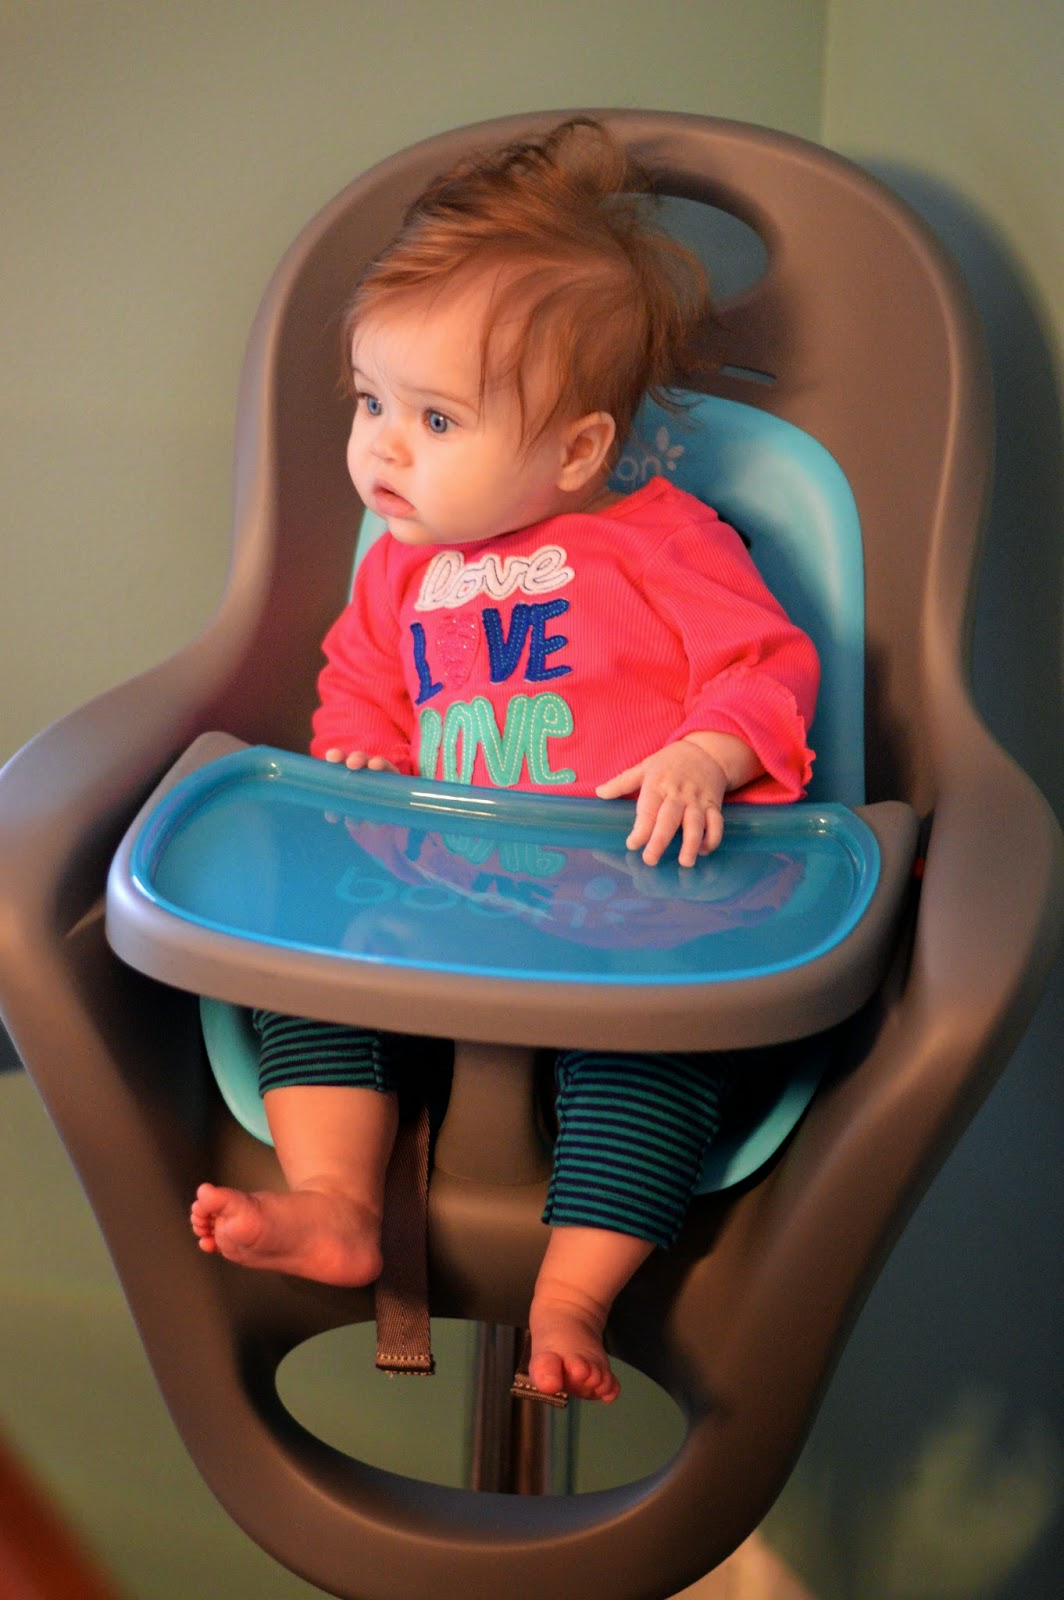 the journey of parenthood best baby led weaning high chair - sometimes in life you get what you pay for it's rare but it does happenin this case it was well worth the money for the boon we love our highchair